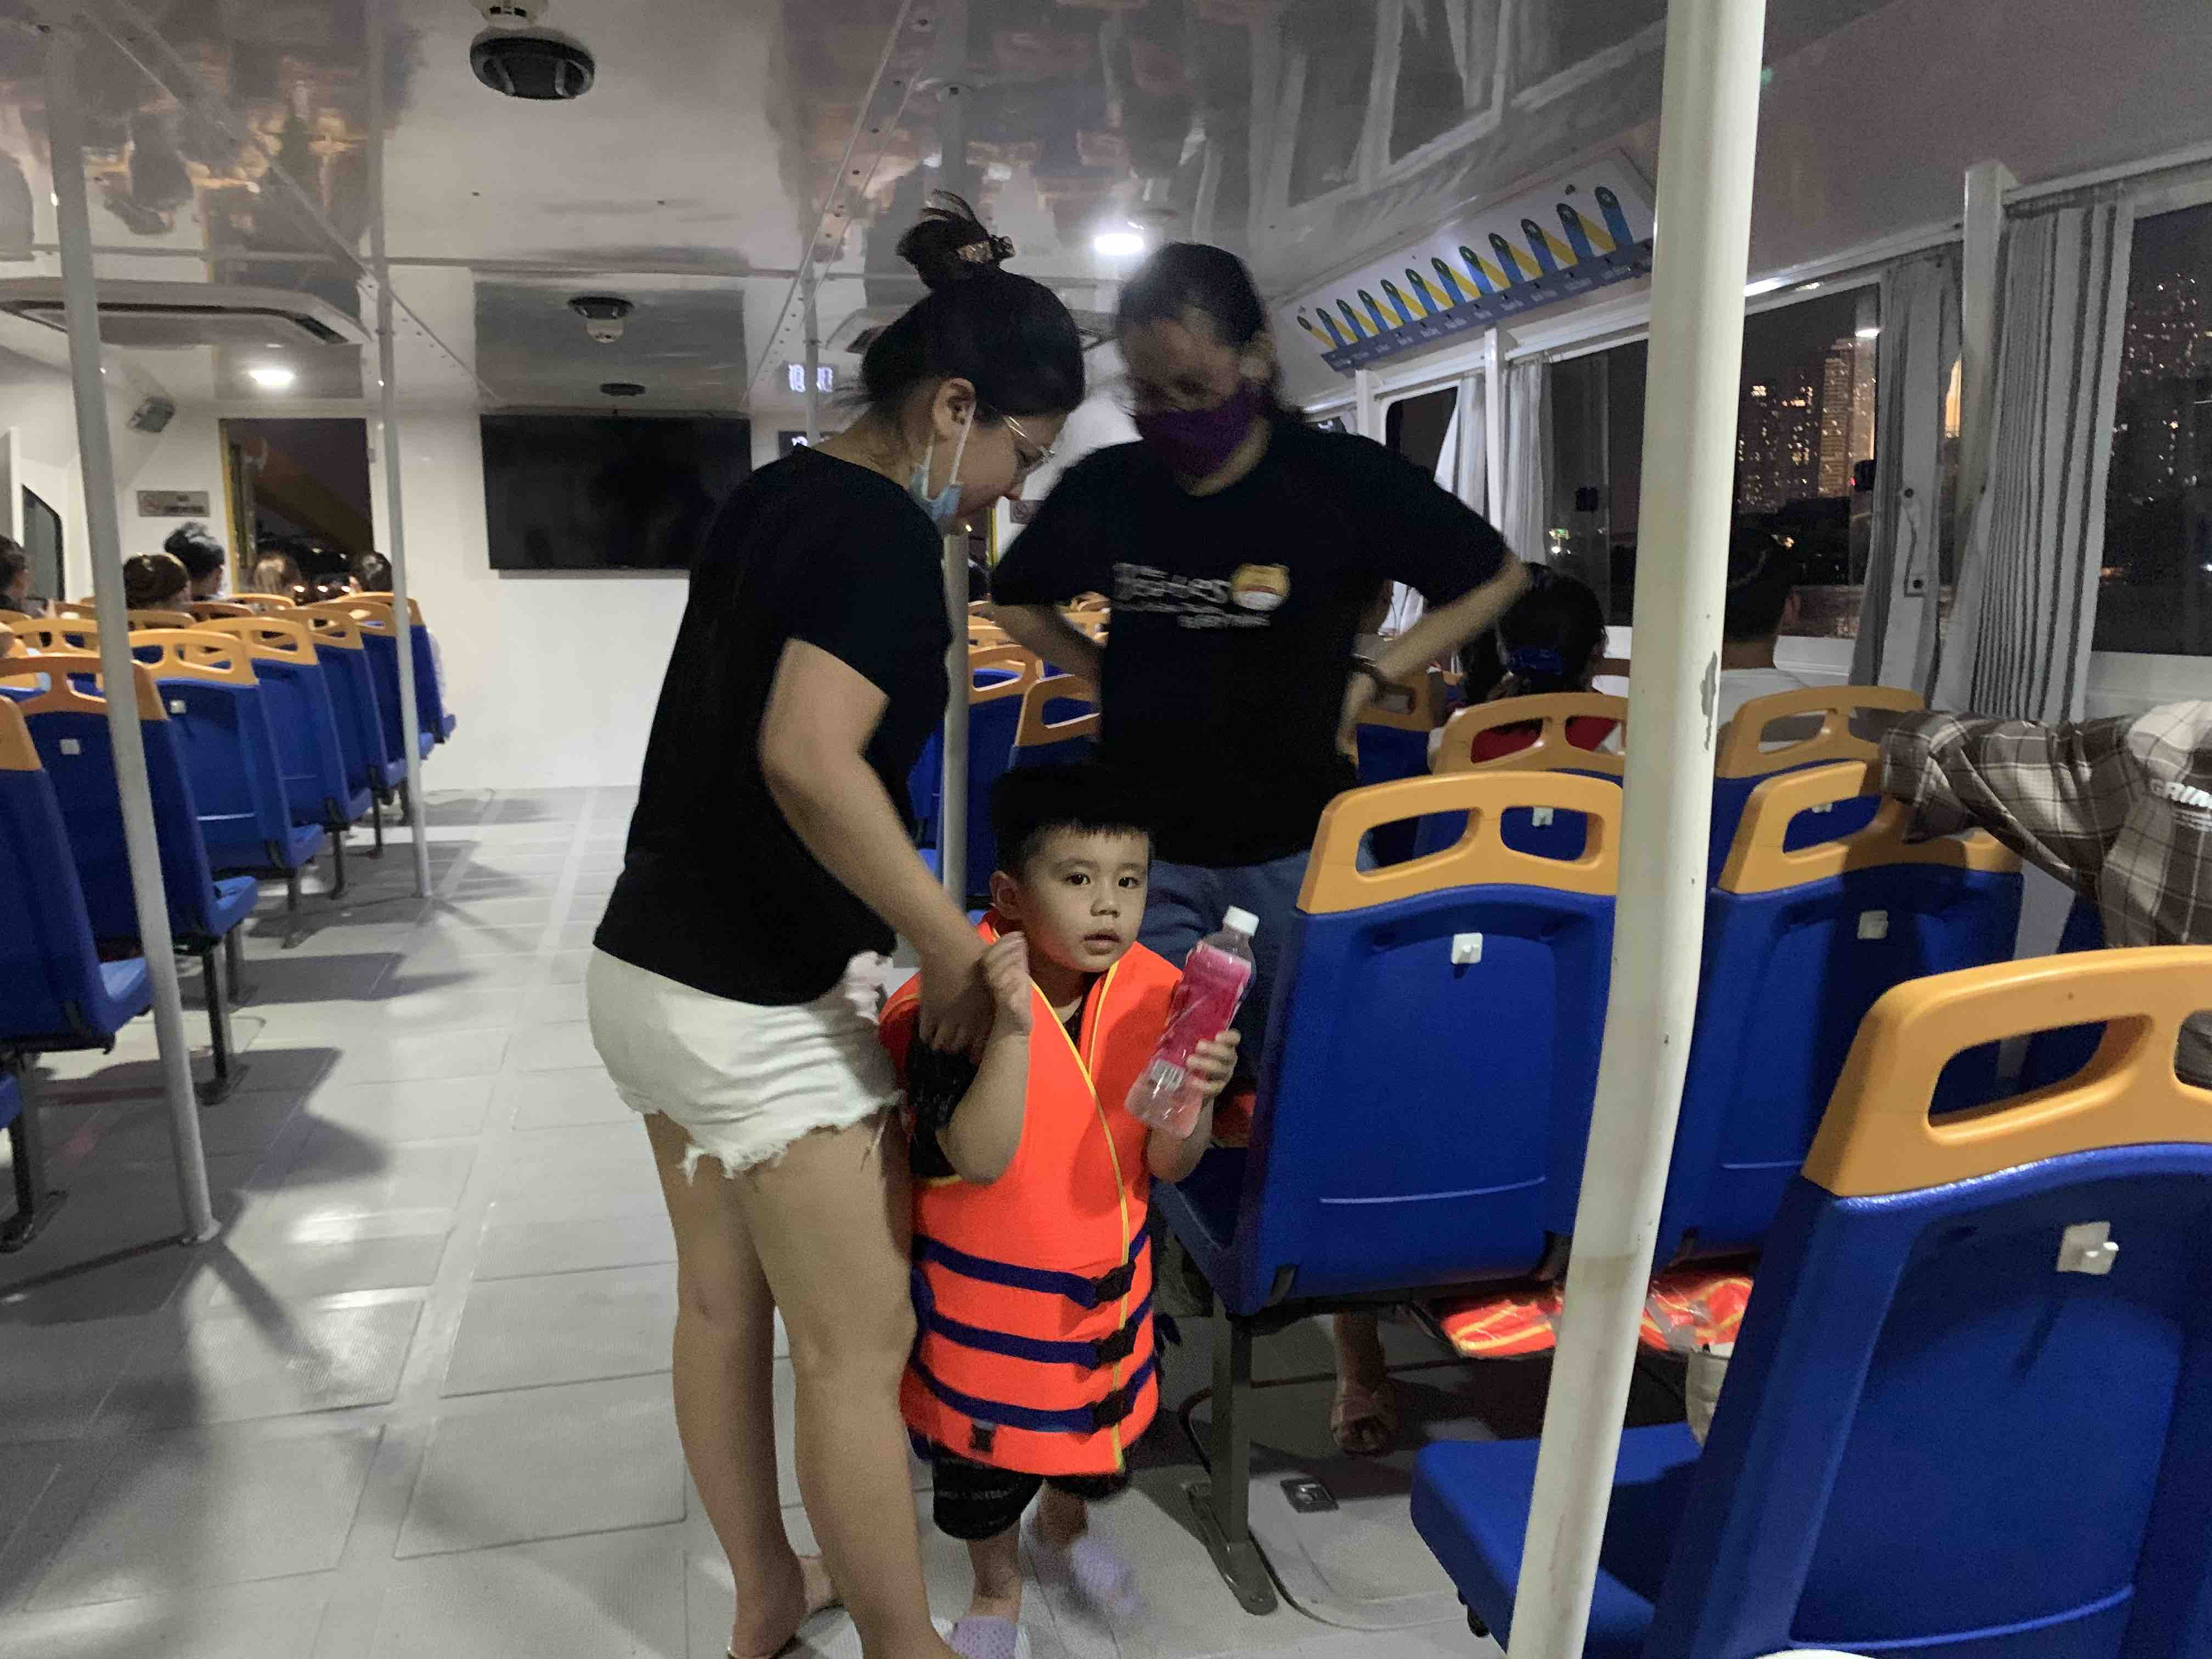 A kid wears life jacket to ensure safety during the trip on the waterbus. Photo: Linh To / Tuoi Tre